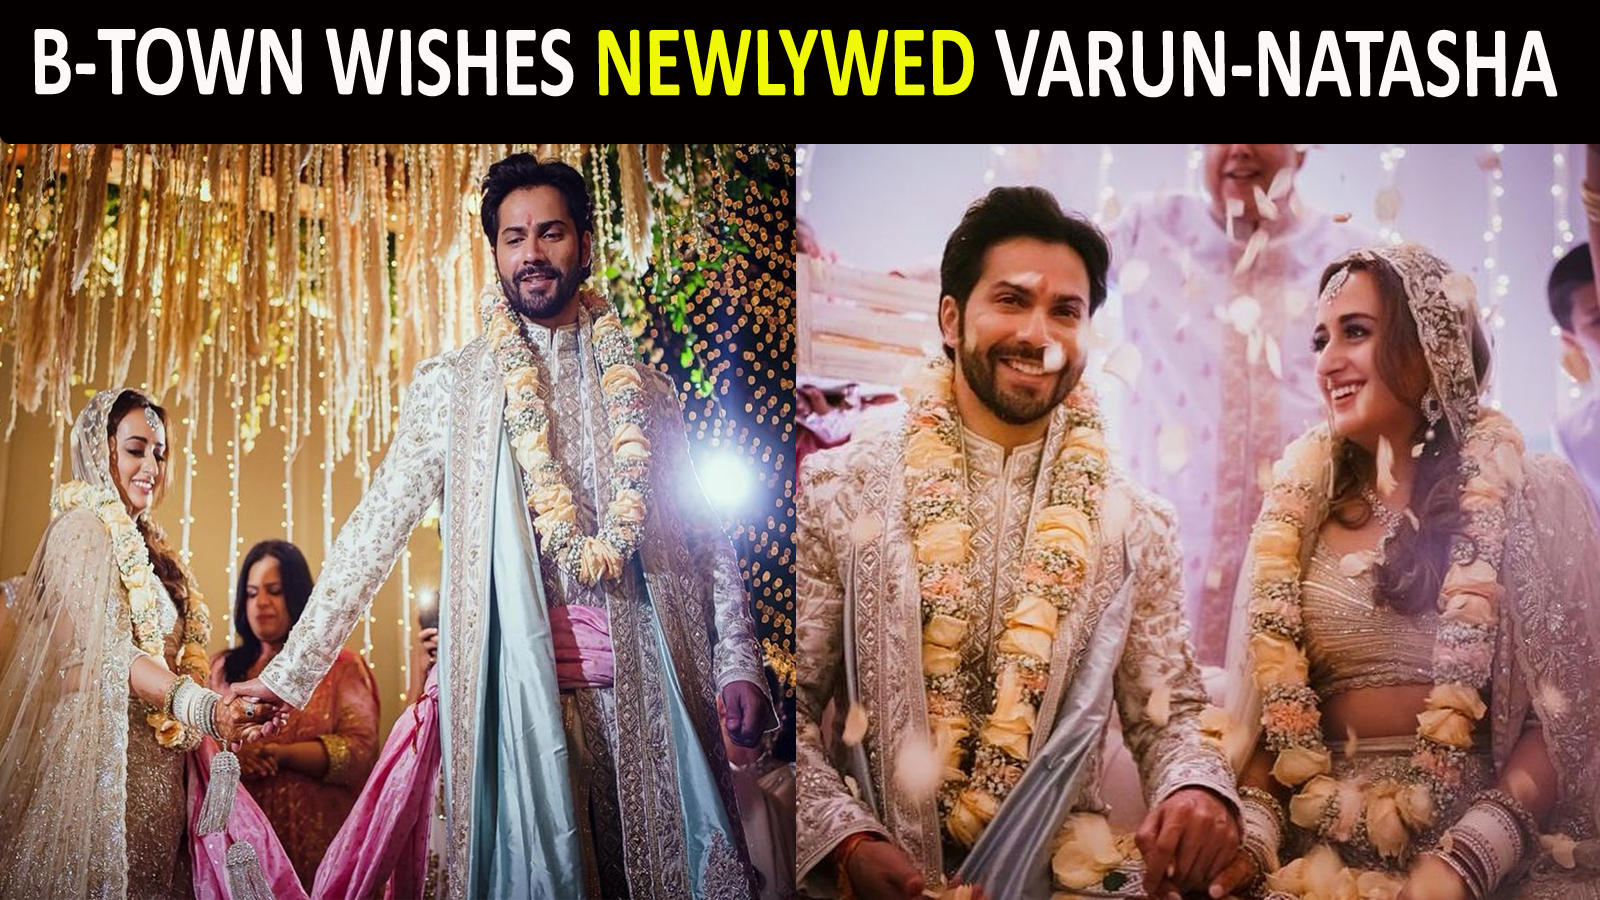 varun-dhawan-natasha-dalal-are-married-from-anushka-sharma-to-deepika-padukone-to-shraddha-kapoor-bollywood-showers-love-on-the-newlywed-couple